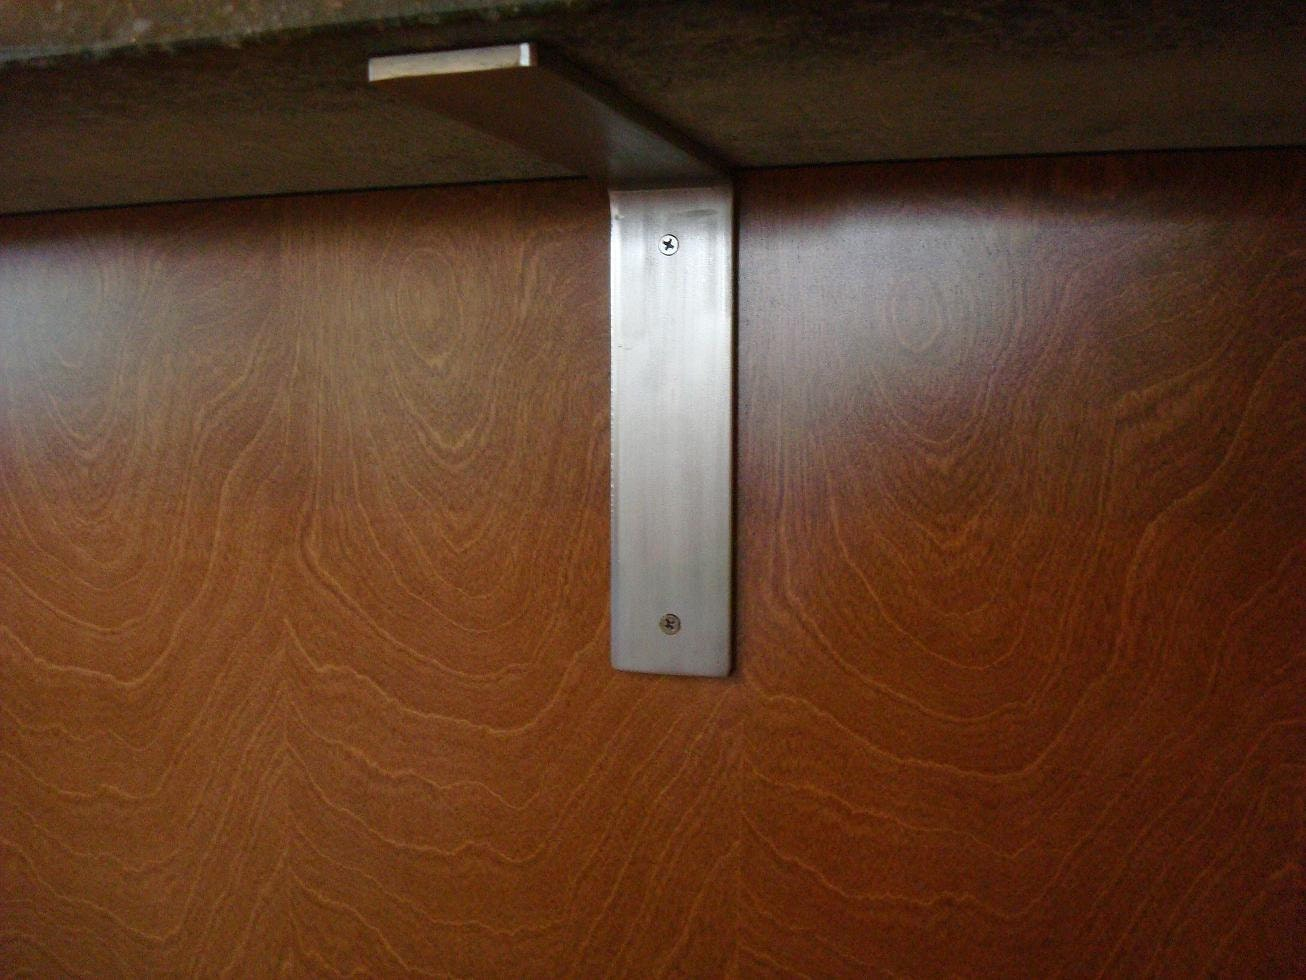 Brushed Stainless Steel Countertop Corbel Support Bracket